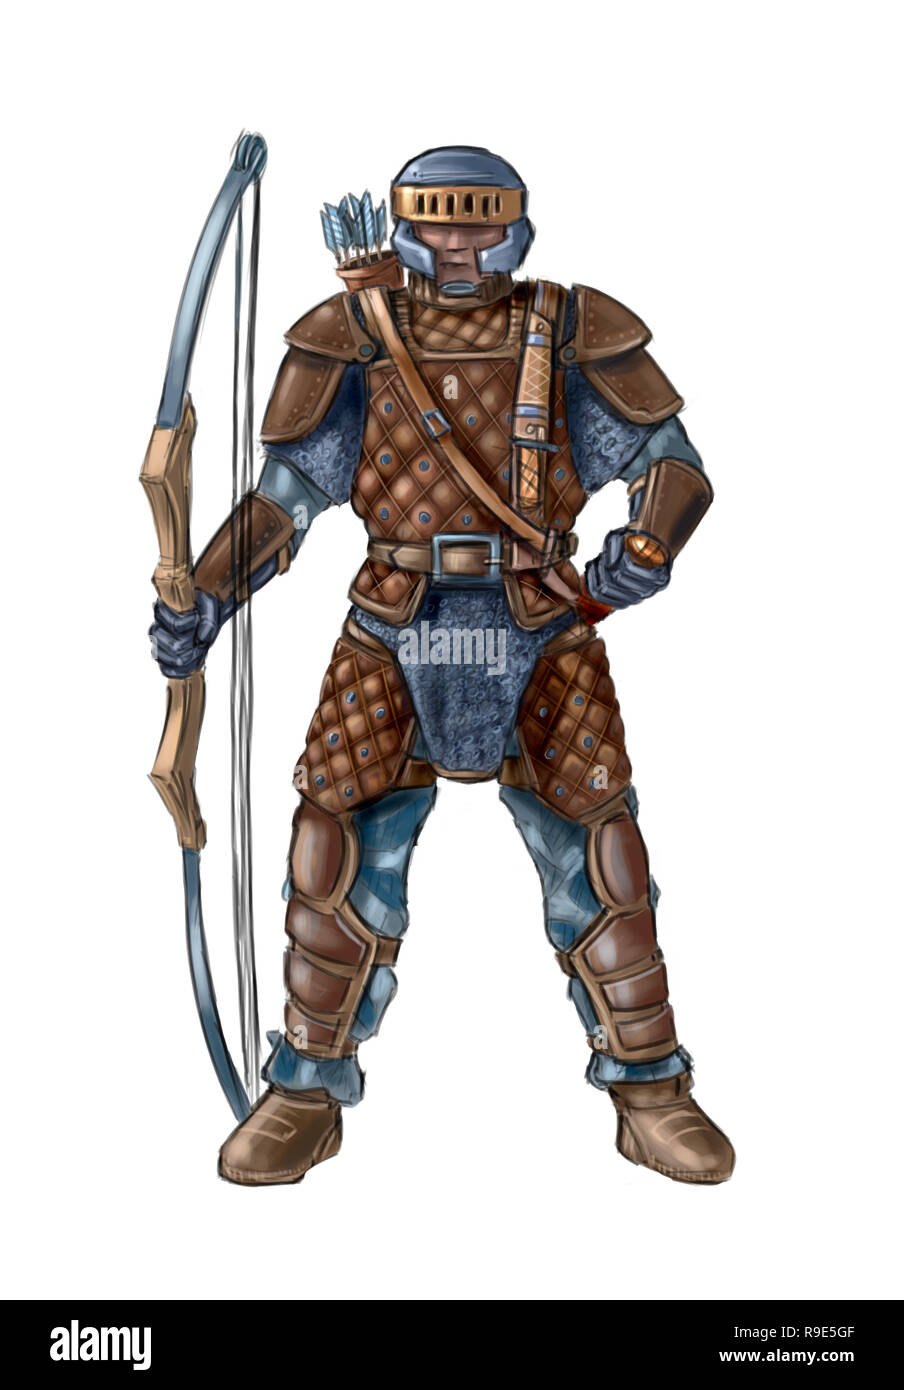 Concept Art Fantasy Illustration Of Archer In Leather Armor With Bow